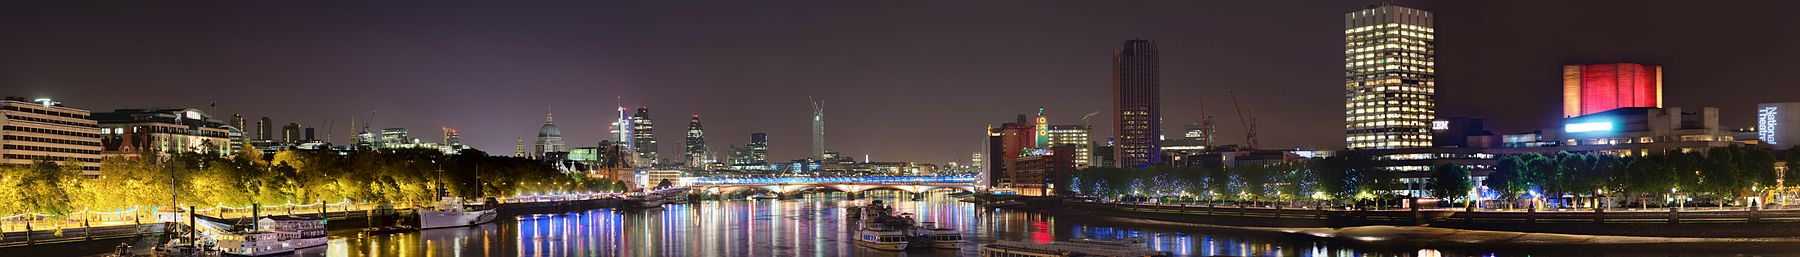 Night-time view from Hungerford Bridge